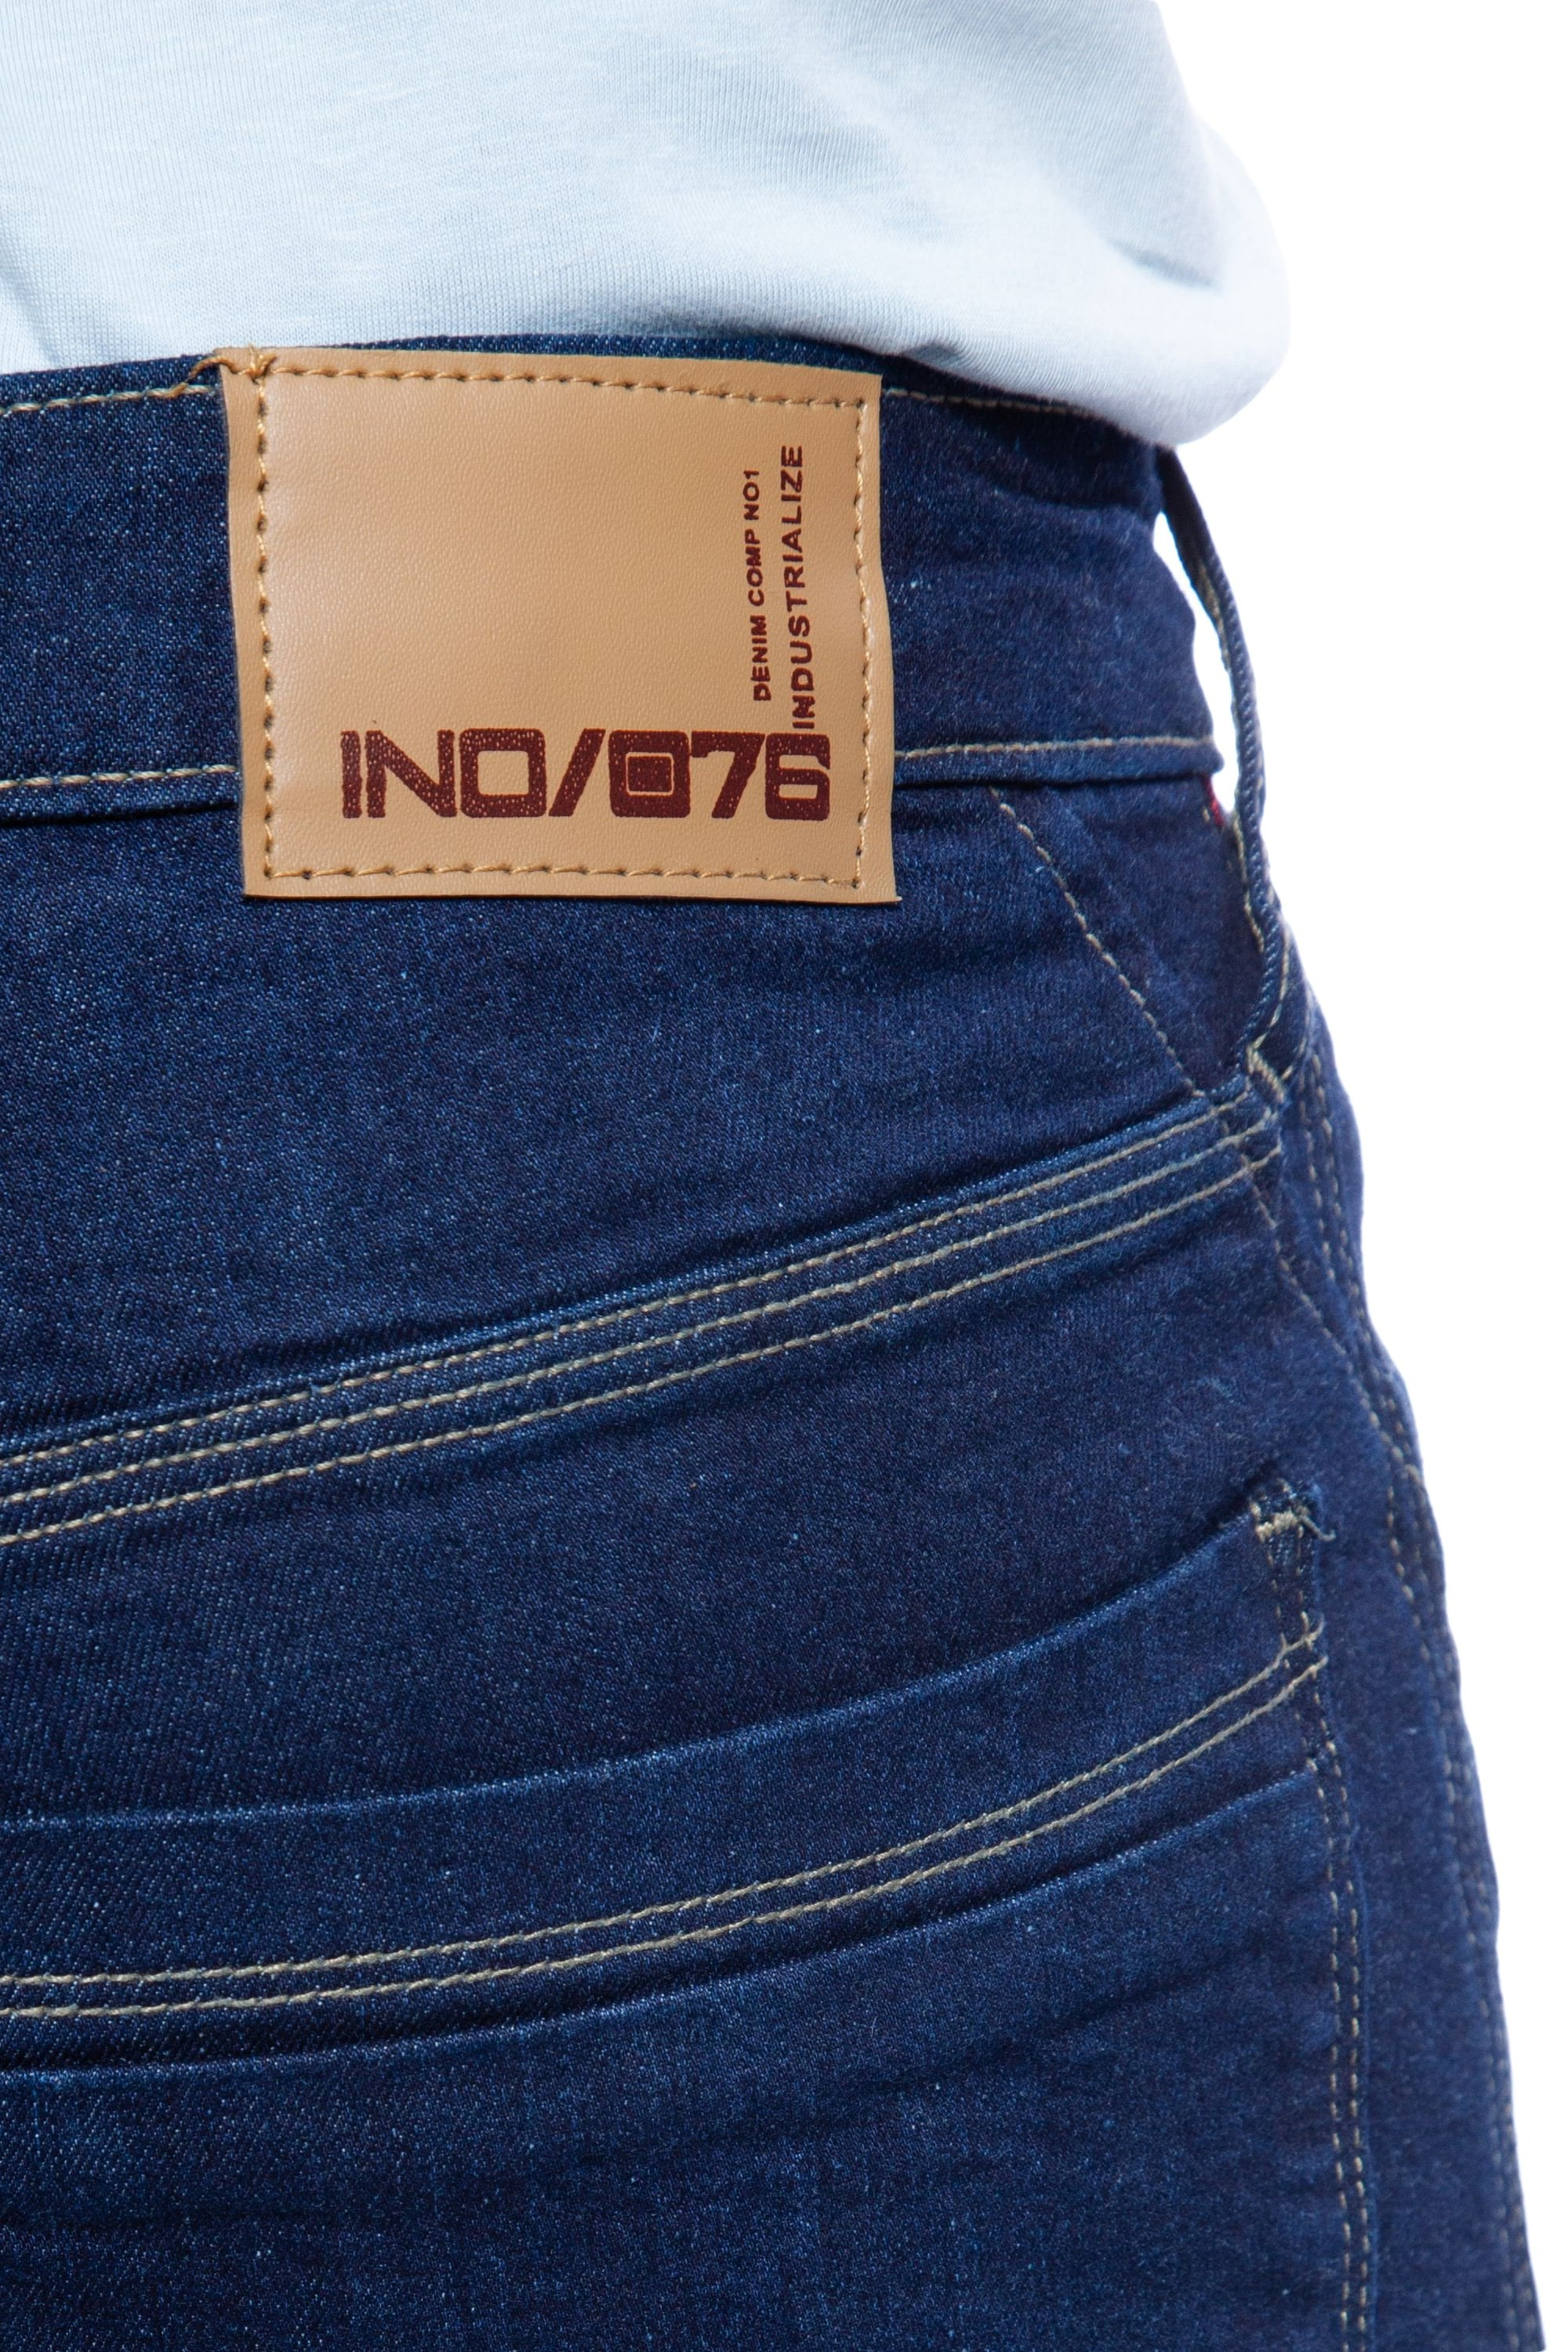 Leave your jeans inside out and dry them on a low temperature, but remember to separate lightweight clothes, like sheets or T-shirts, from heavyweight garments, like towels, or you guess it, denim.